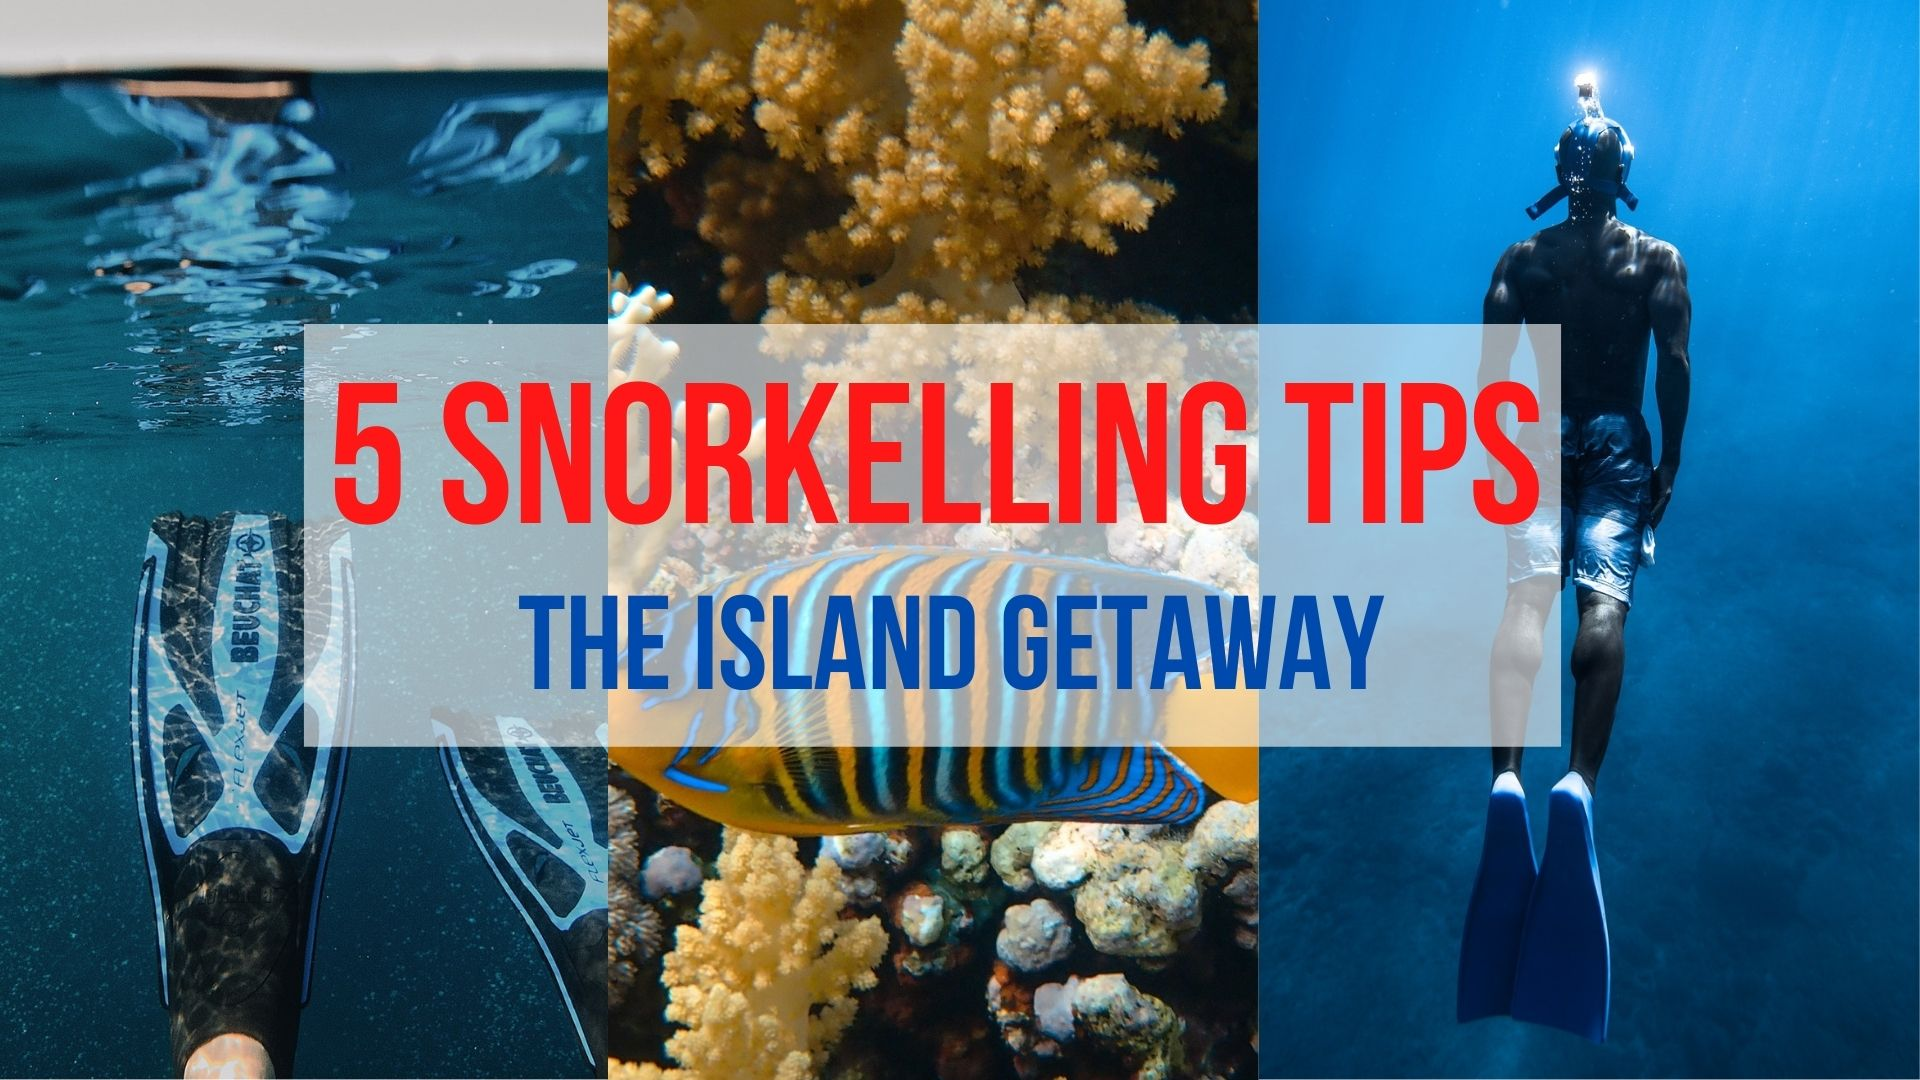 5 Basic Practice for Those First Time Snorkelling